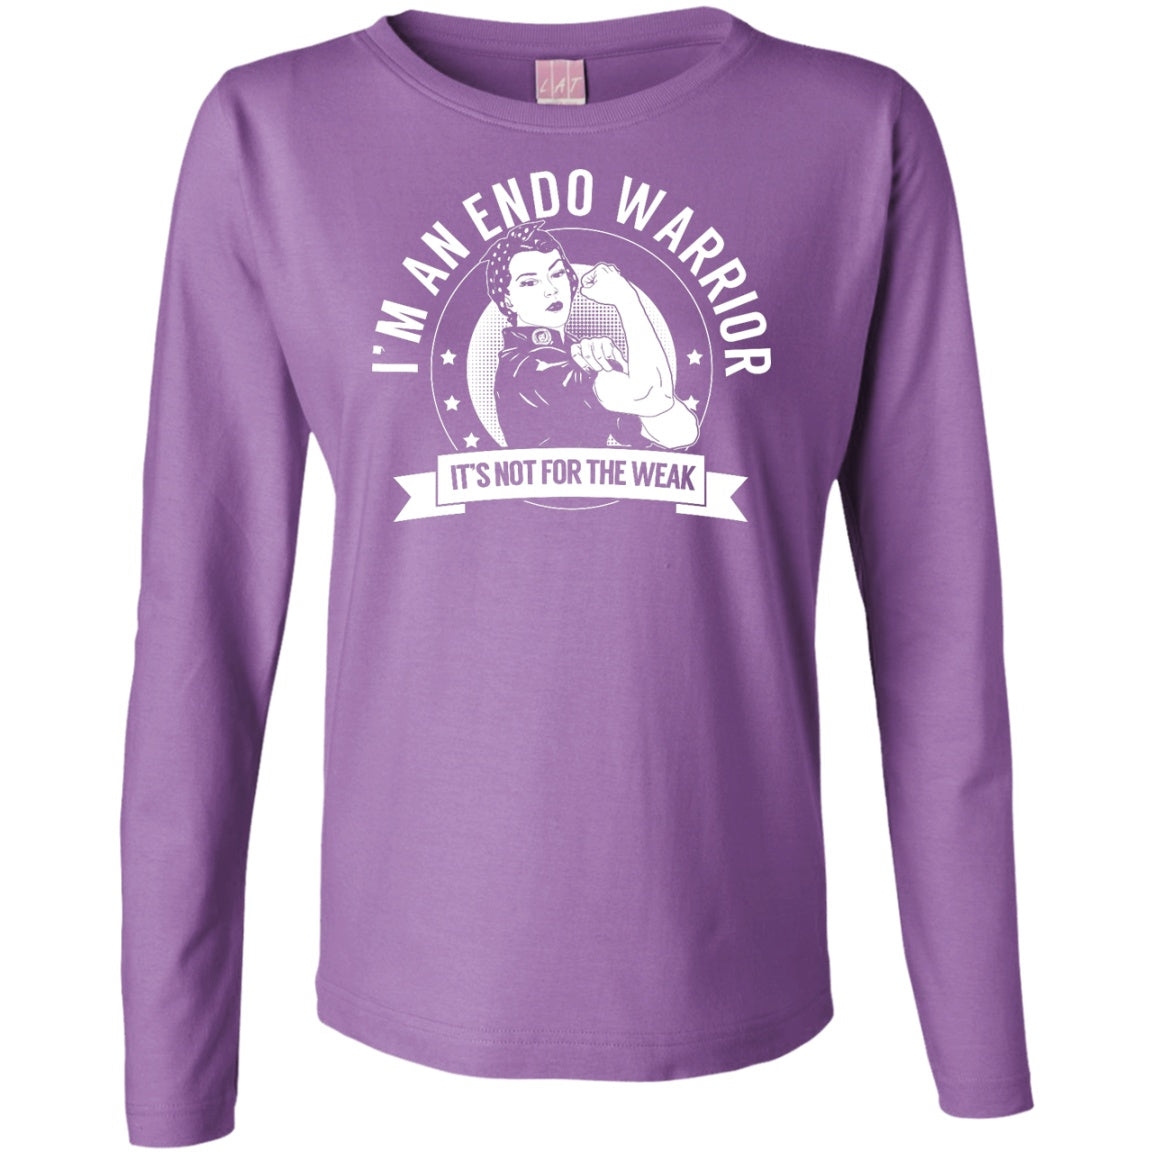 Endometriosis - Endo Warrior Not For The Weak Womens Long Sleeve Shirt - The Unchargeables